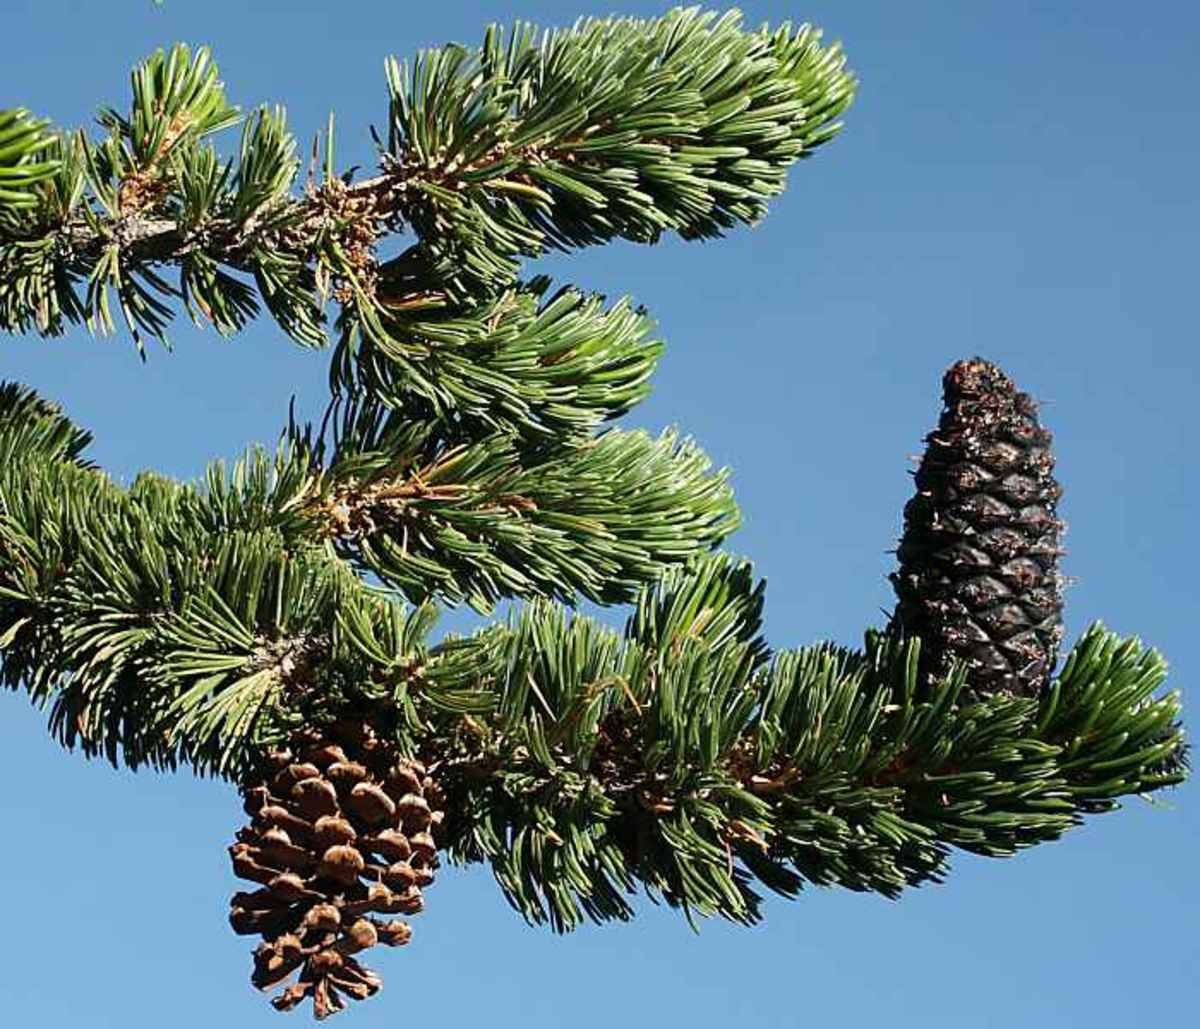 Bristlecone Pine needles and cones